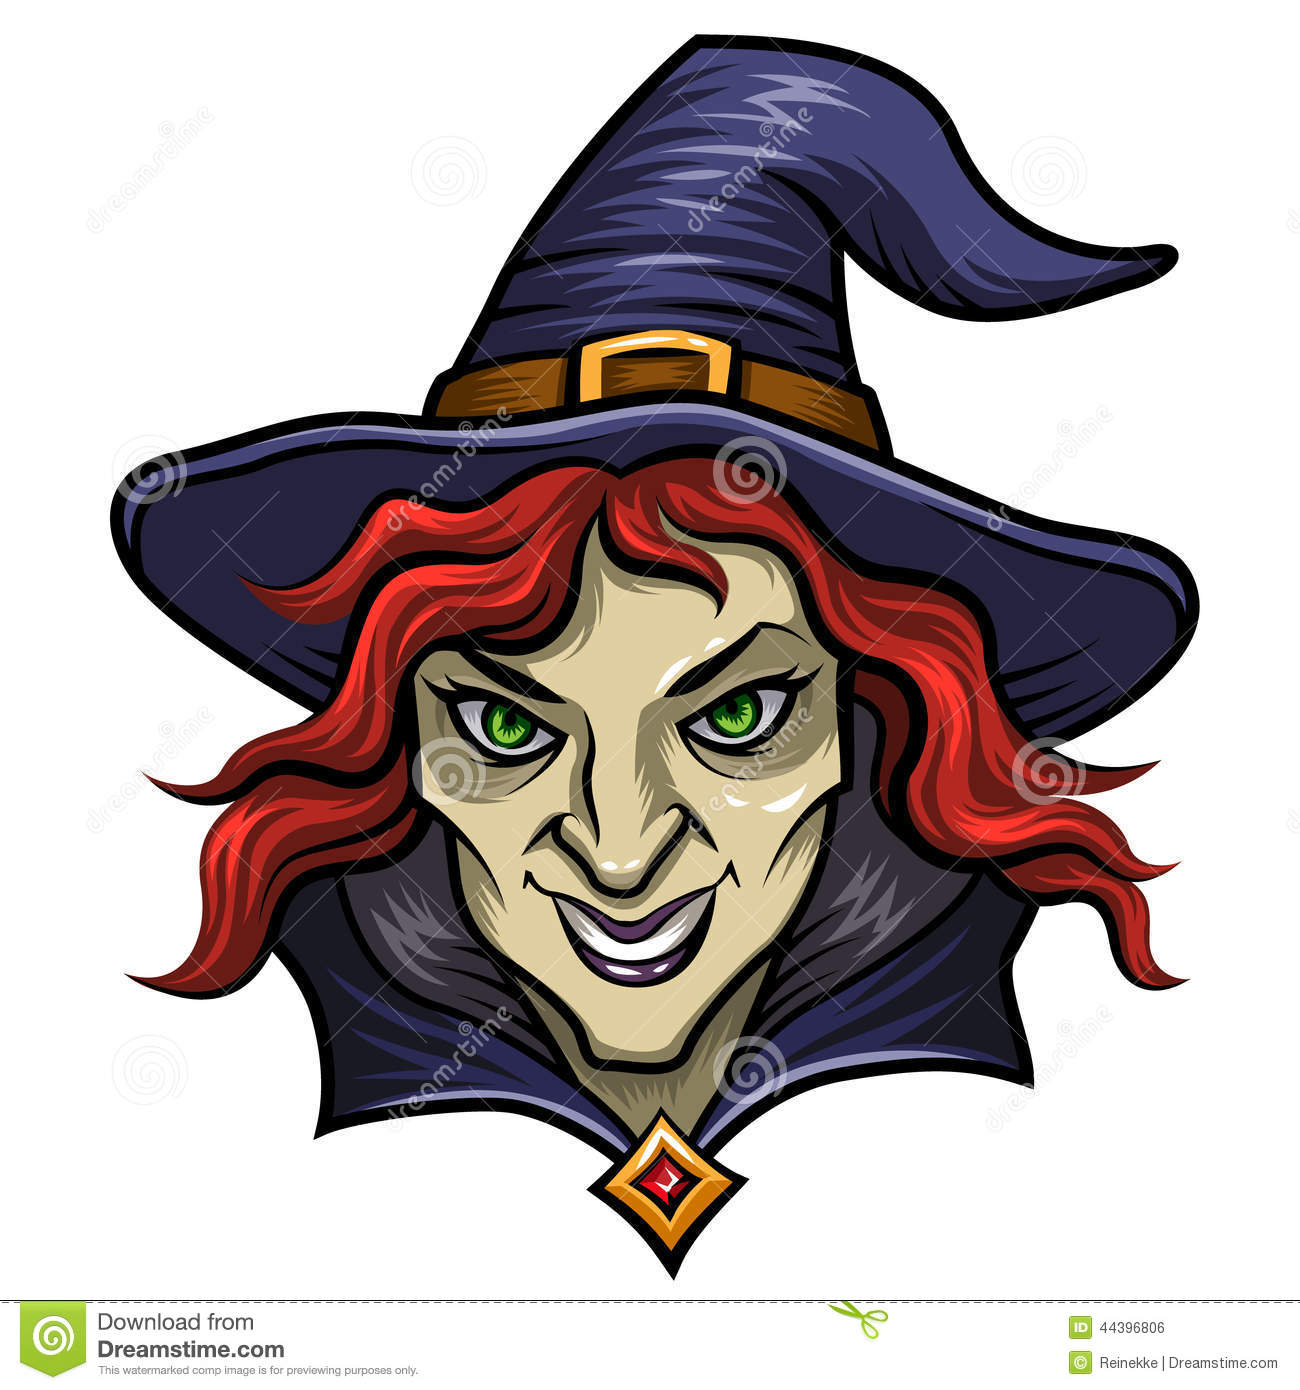 Smiling witch in hat. Cartoon character for Halloween.